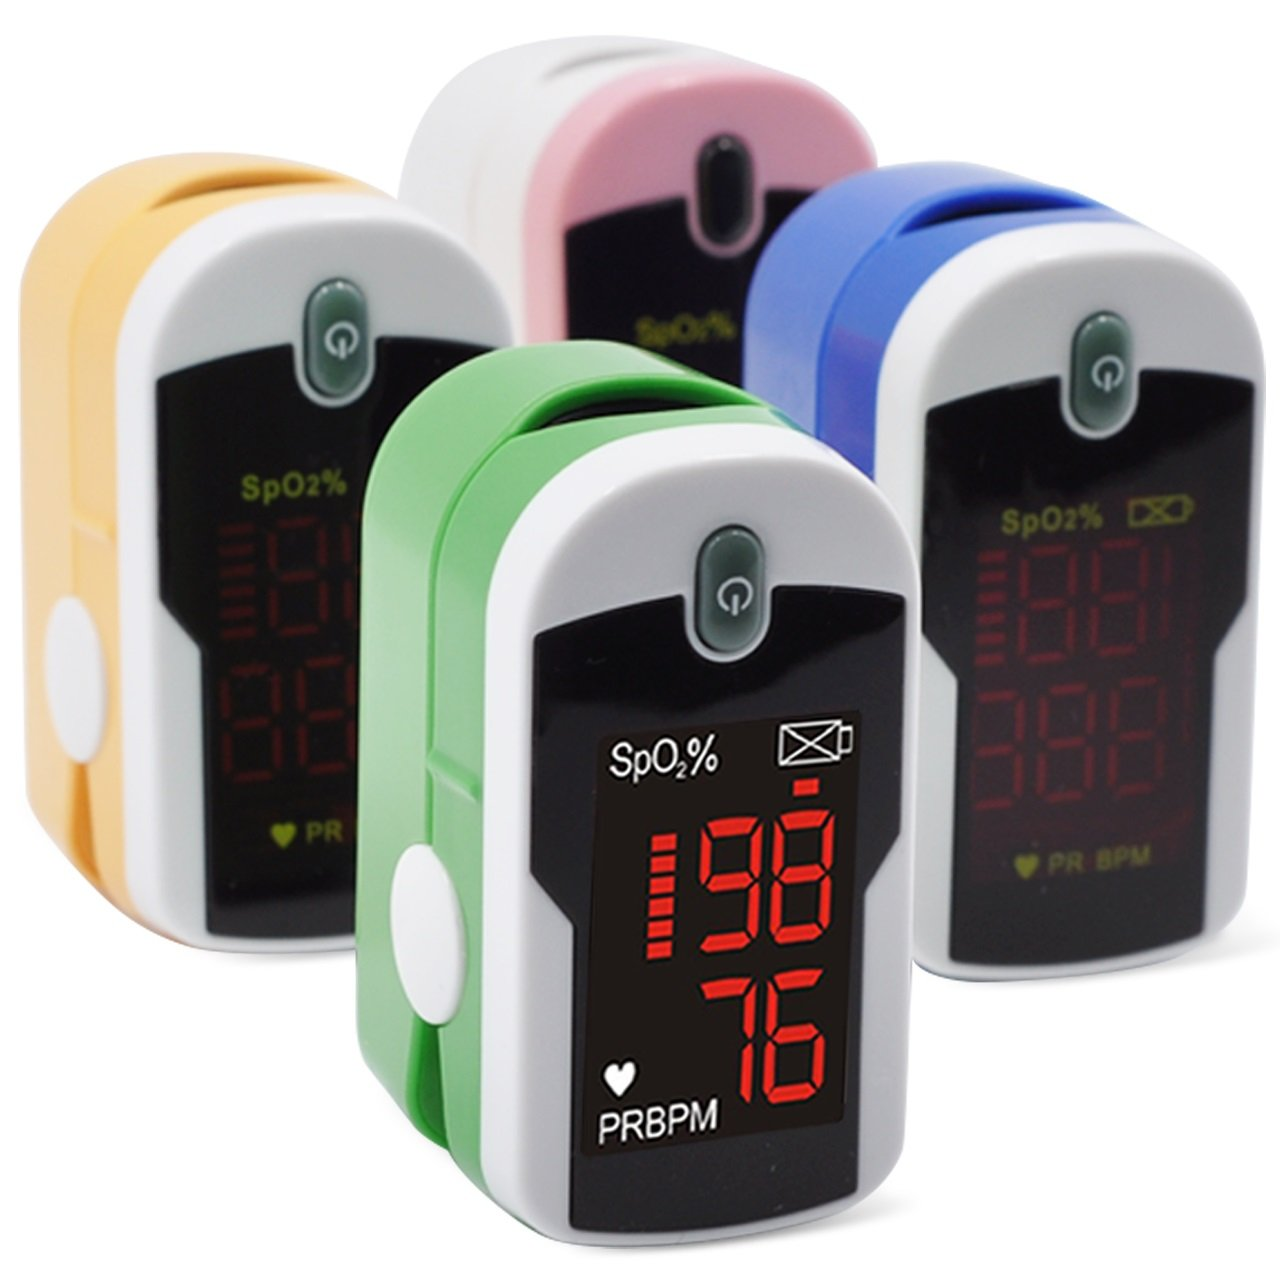 Concord Health Supply Pulse Oximeter